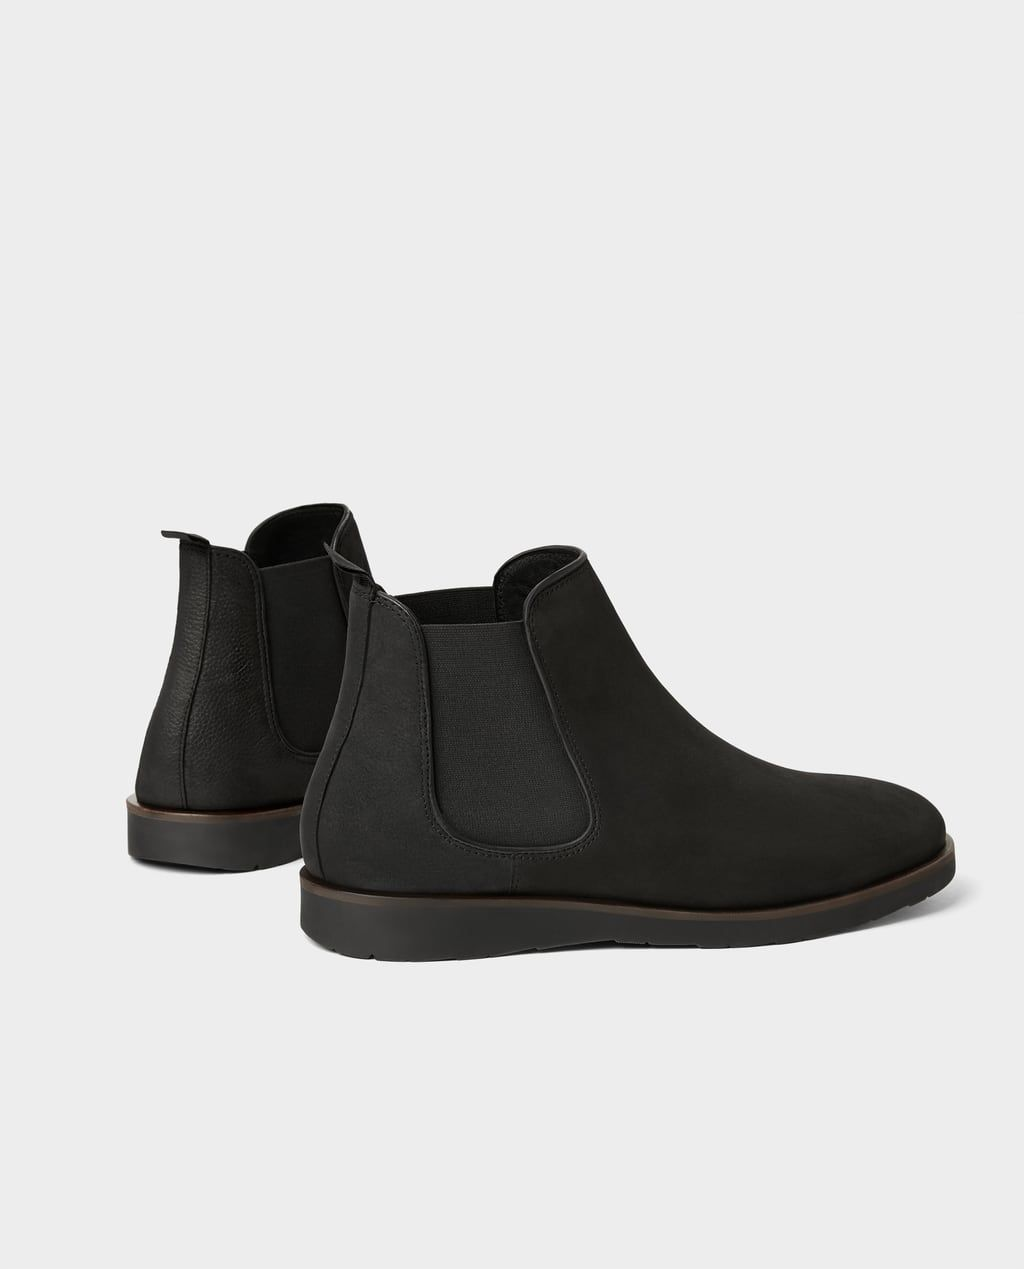 BLACK LEATHER SPORTY ANKLE BOOTS